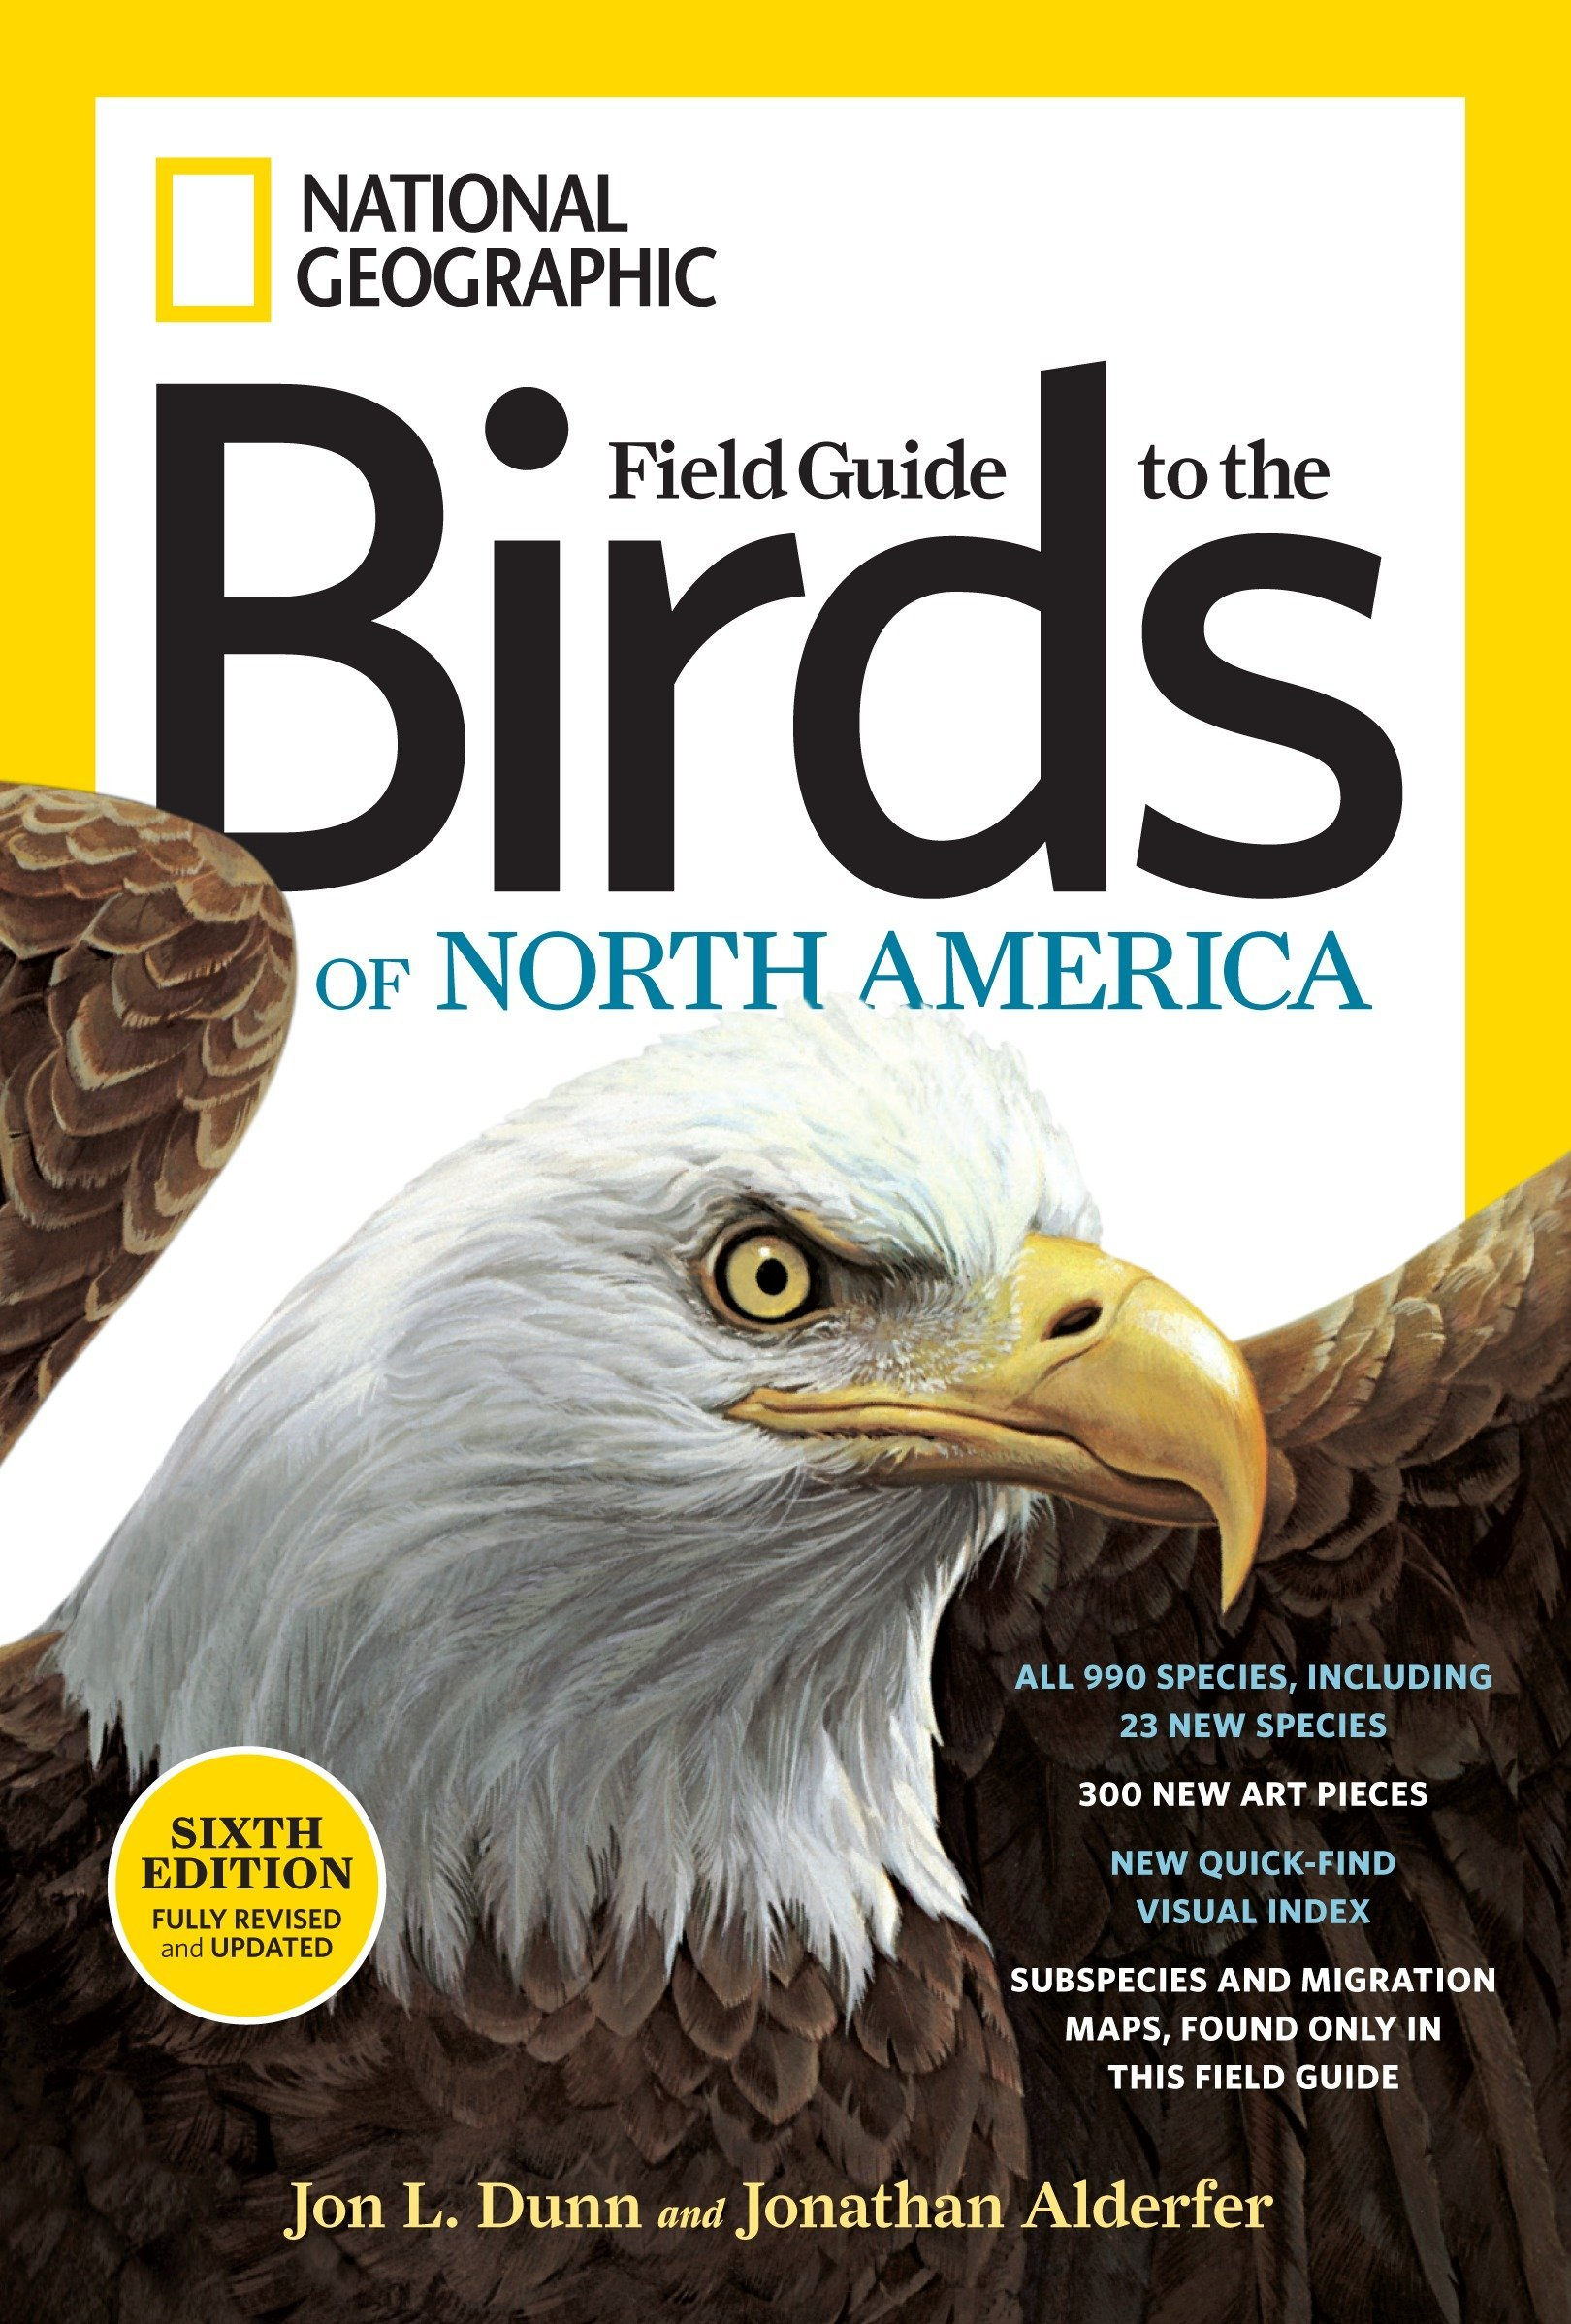 01811cc492 National Geographic Field Guide to the Birds of North America, Sixth  Edition (National Geographic Field Guide to Birds of North America)  Paperback ...